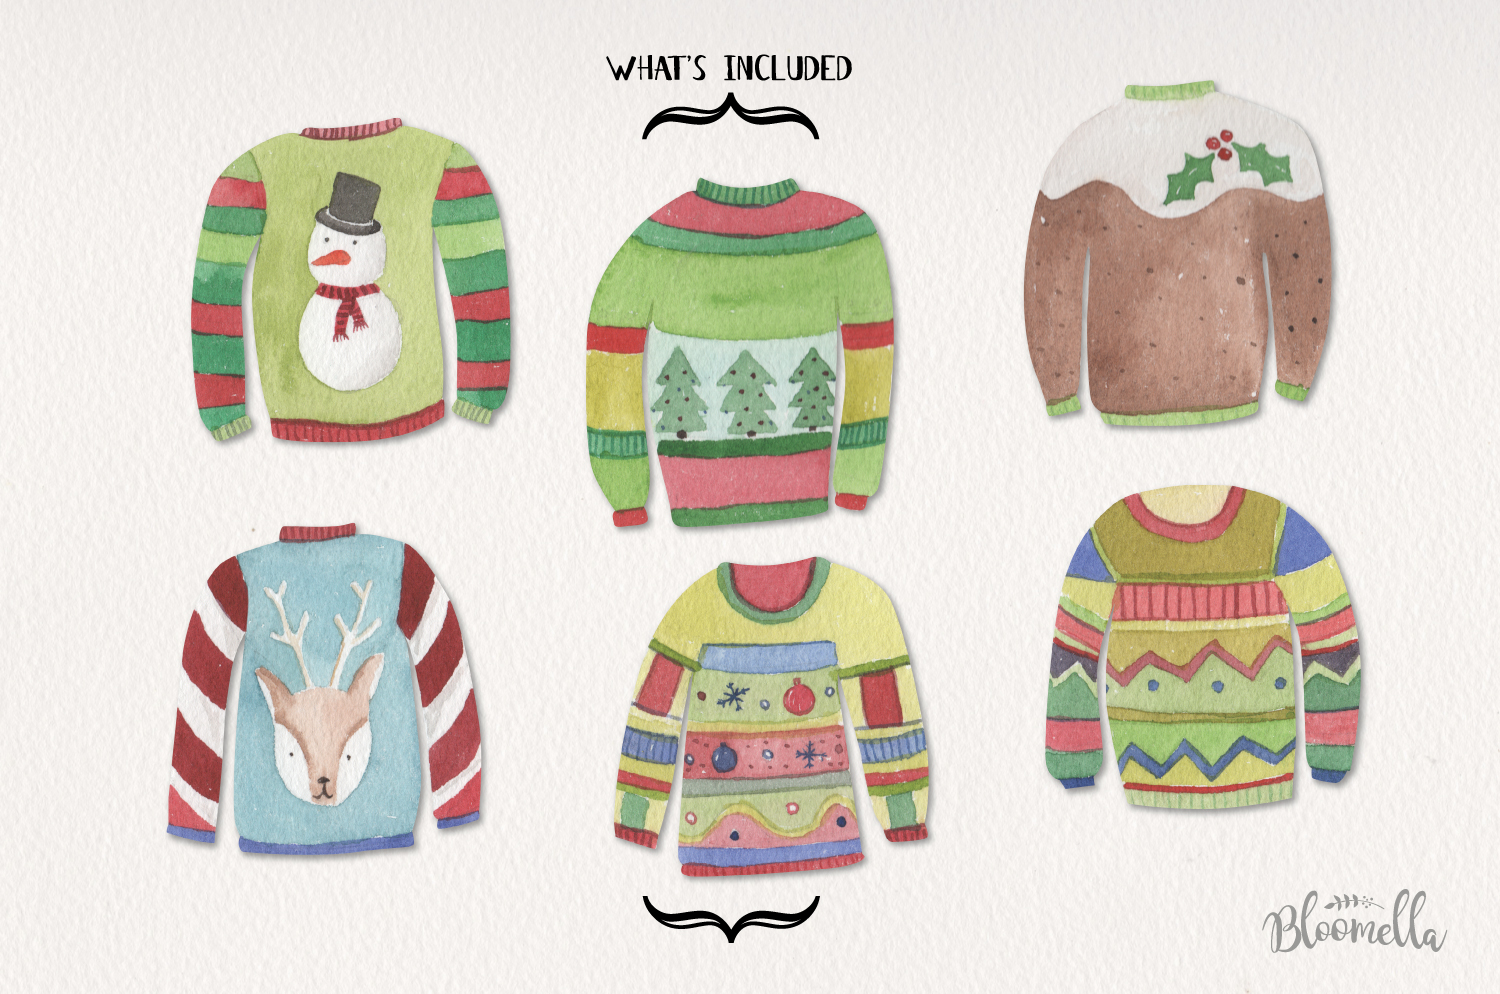 Festive Jumpers Watercolor Elements Christmas Sweaters Xmas example image 2